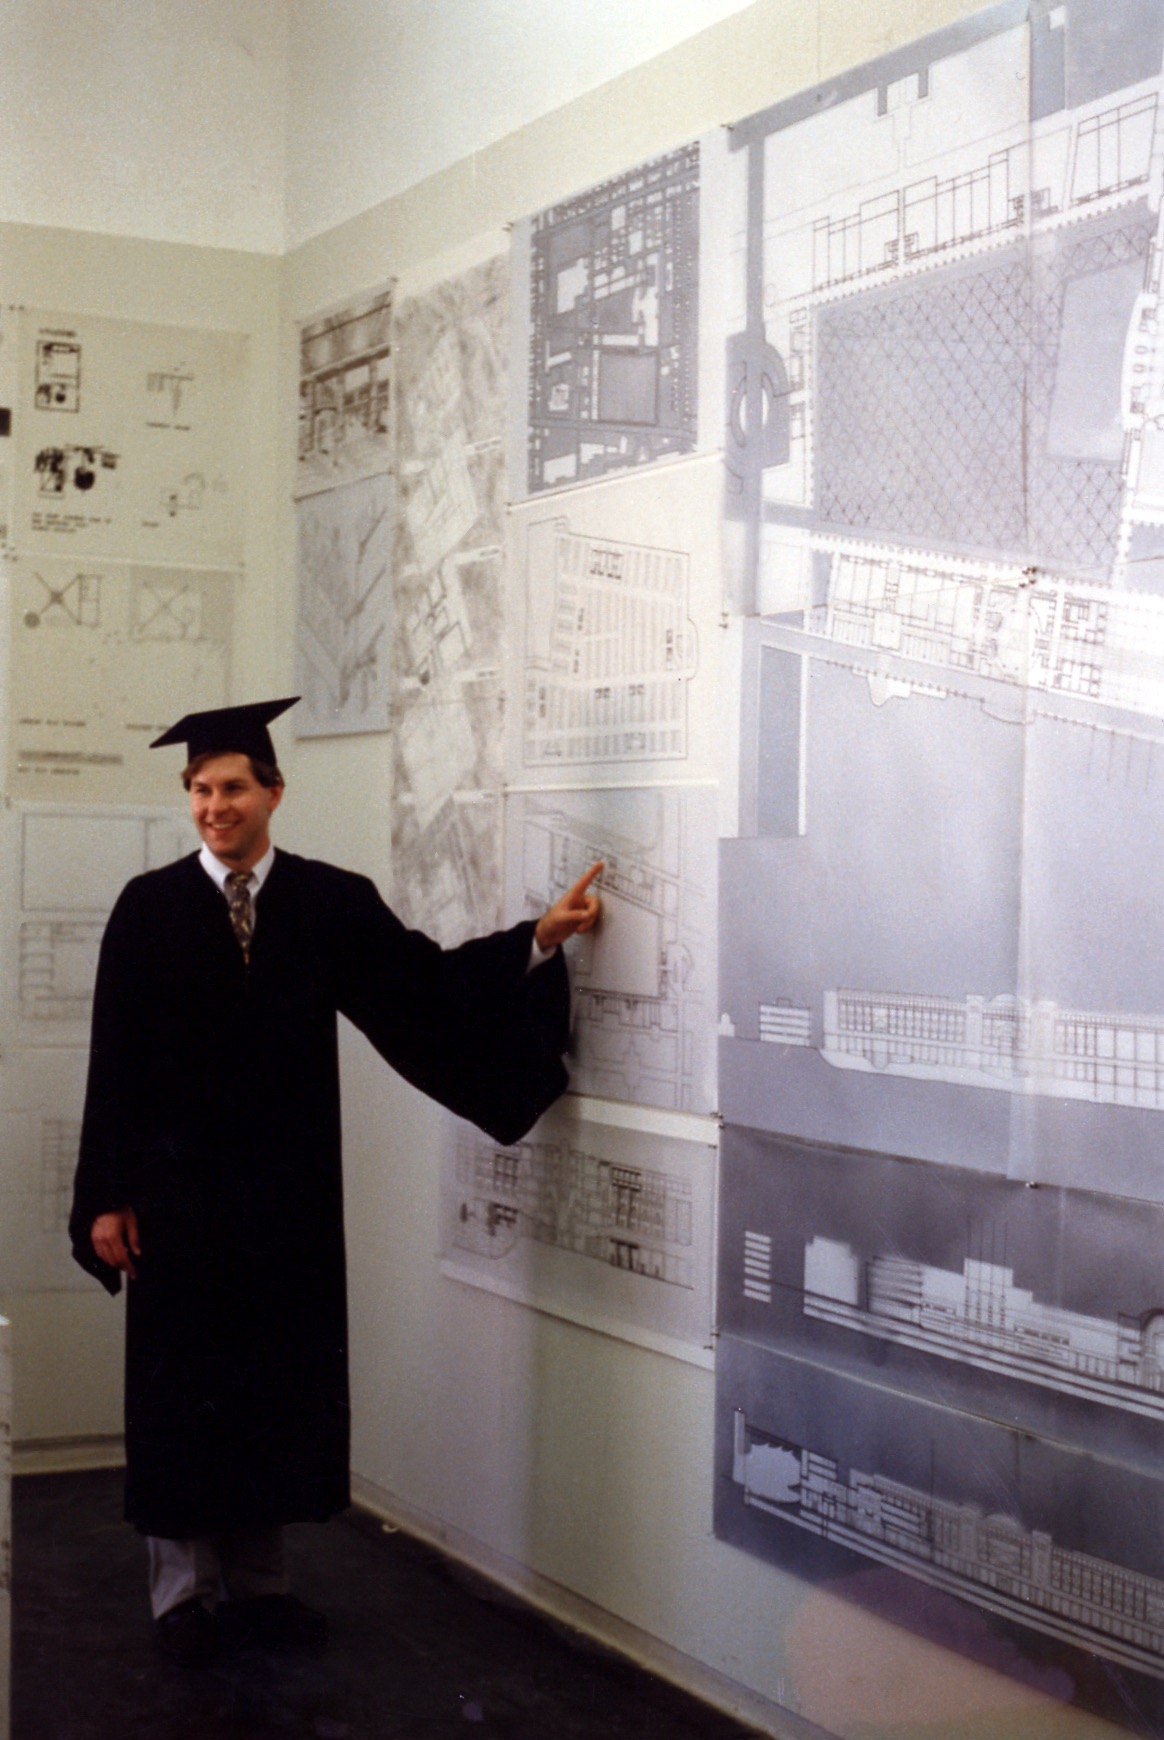 Alumnus Grant Kirkpatrick, '86, with his B.Arch senior thesis project. Photo courtesy of Grant Kirkpatrick.